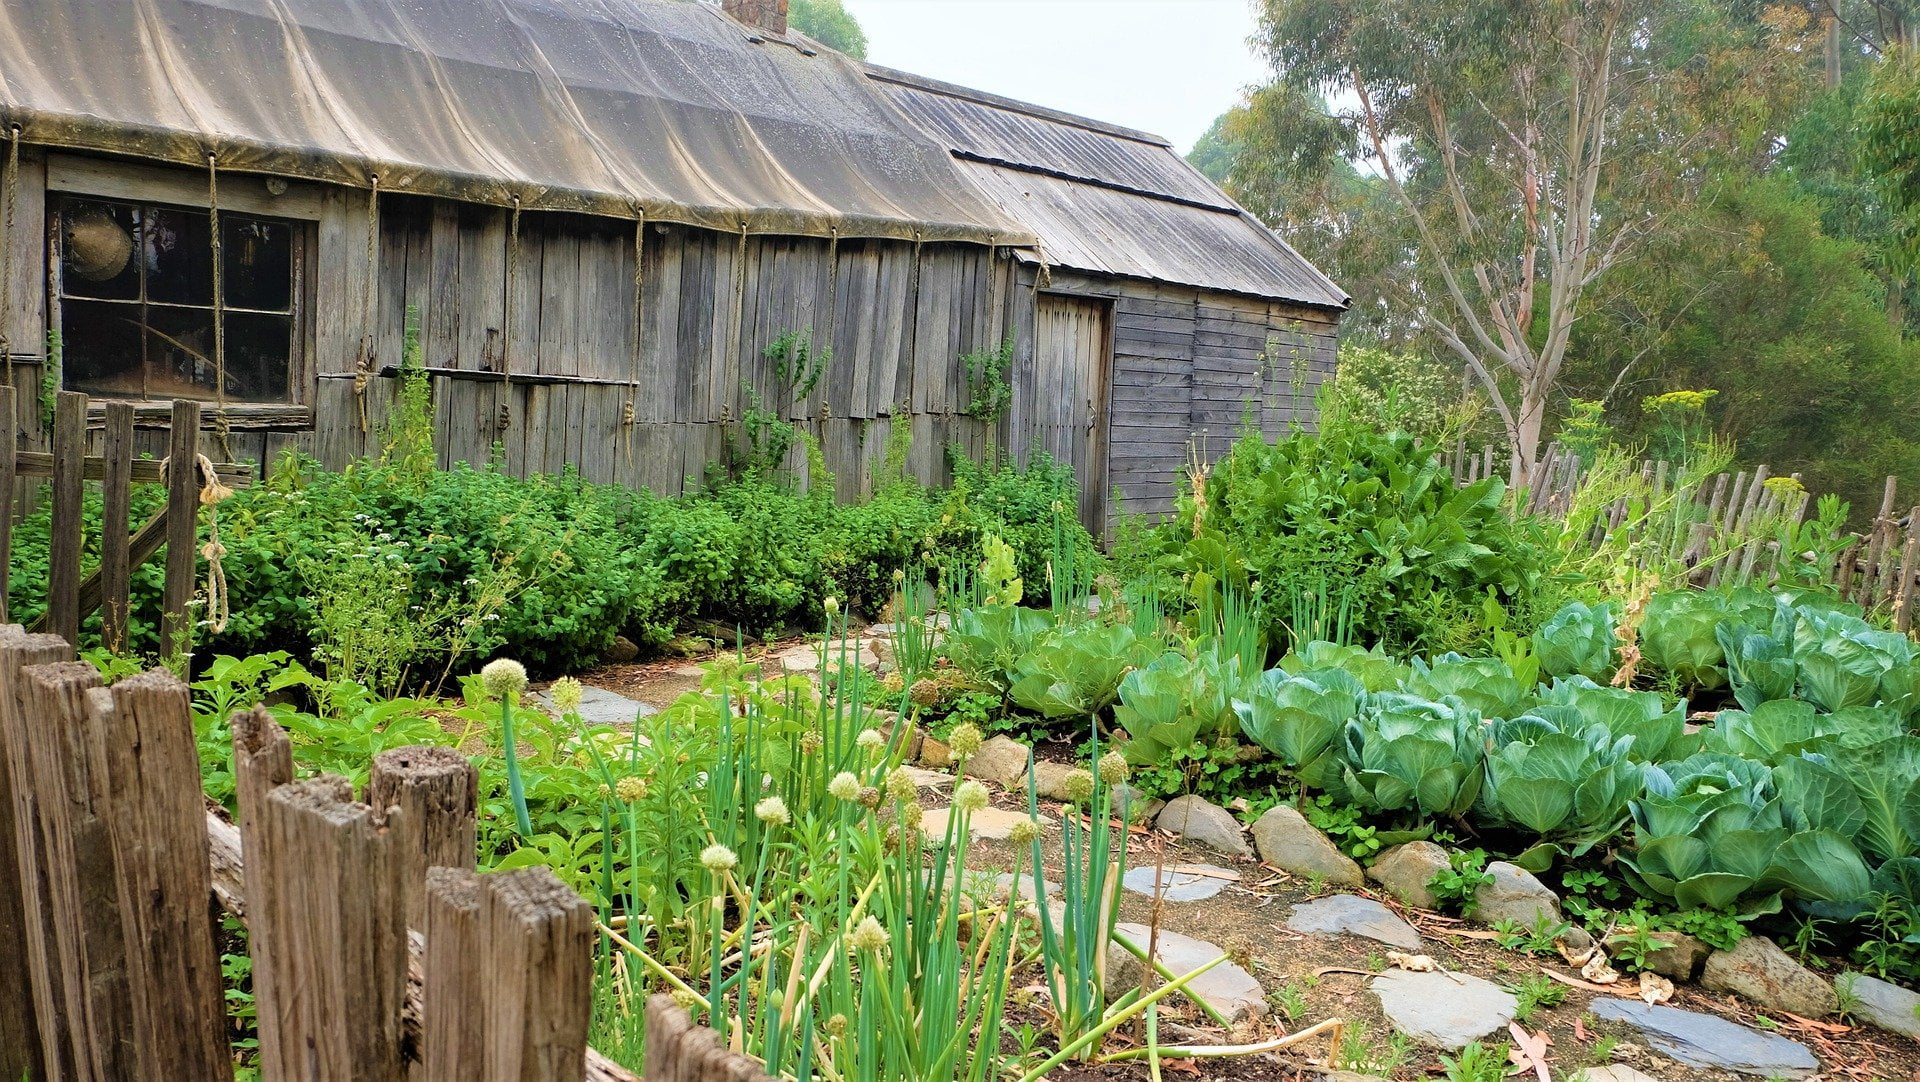 What Is Organic Gardening And Why Is It Important?